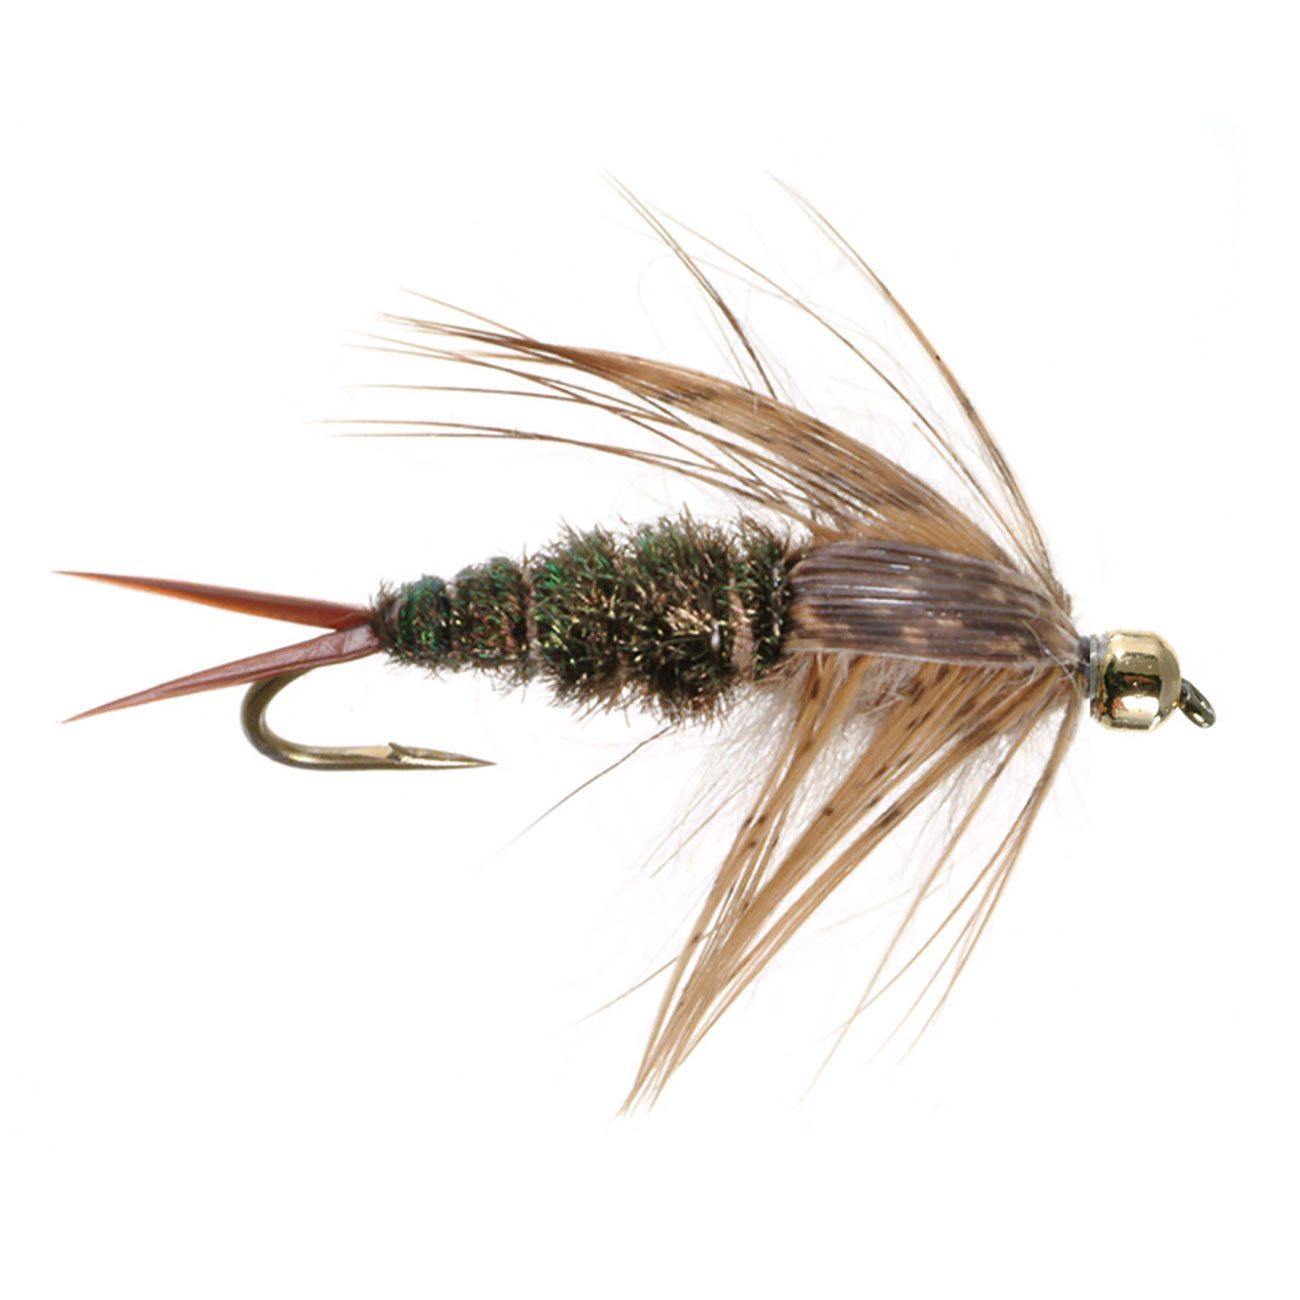 Umpqua Rogue Foam Stone Golden Dry Flies